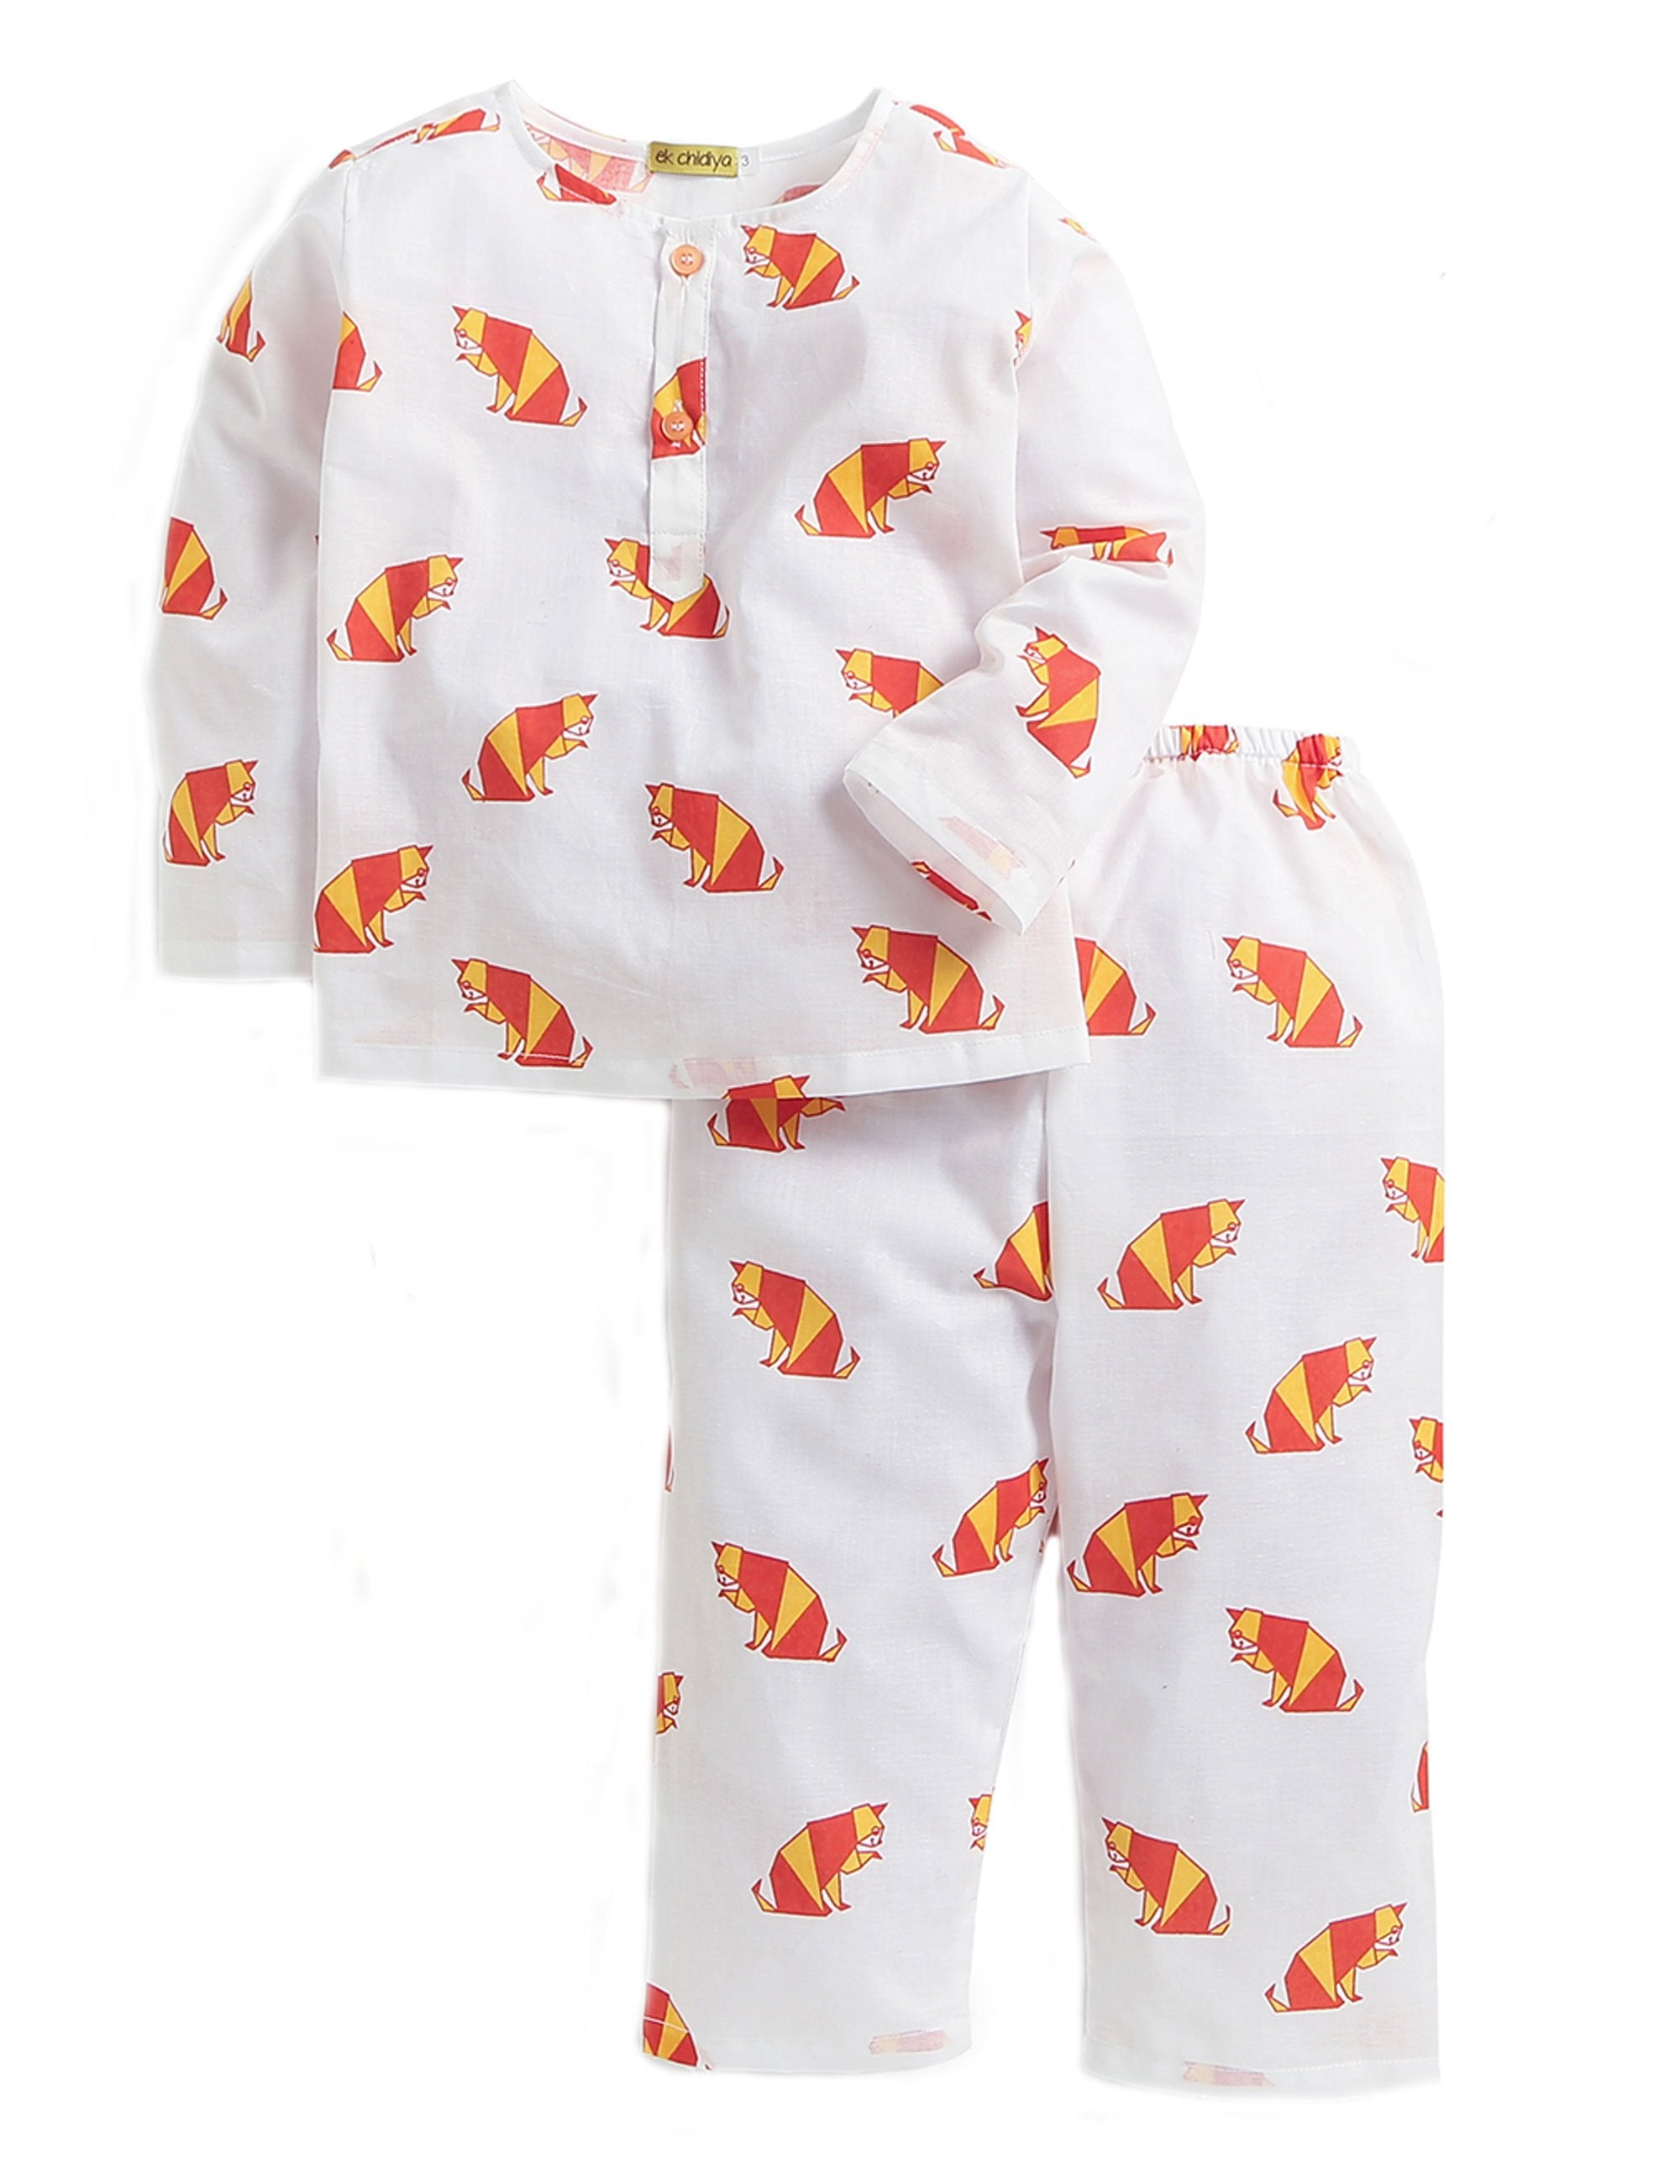 Cat Printed Nightwear In White and Red Colour for Boys and Girls